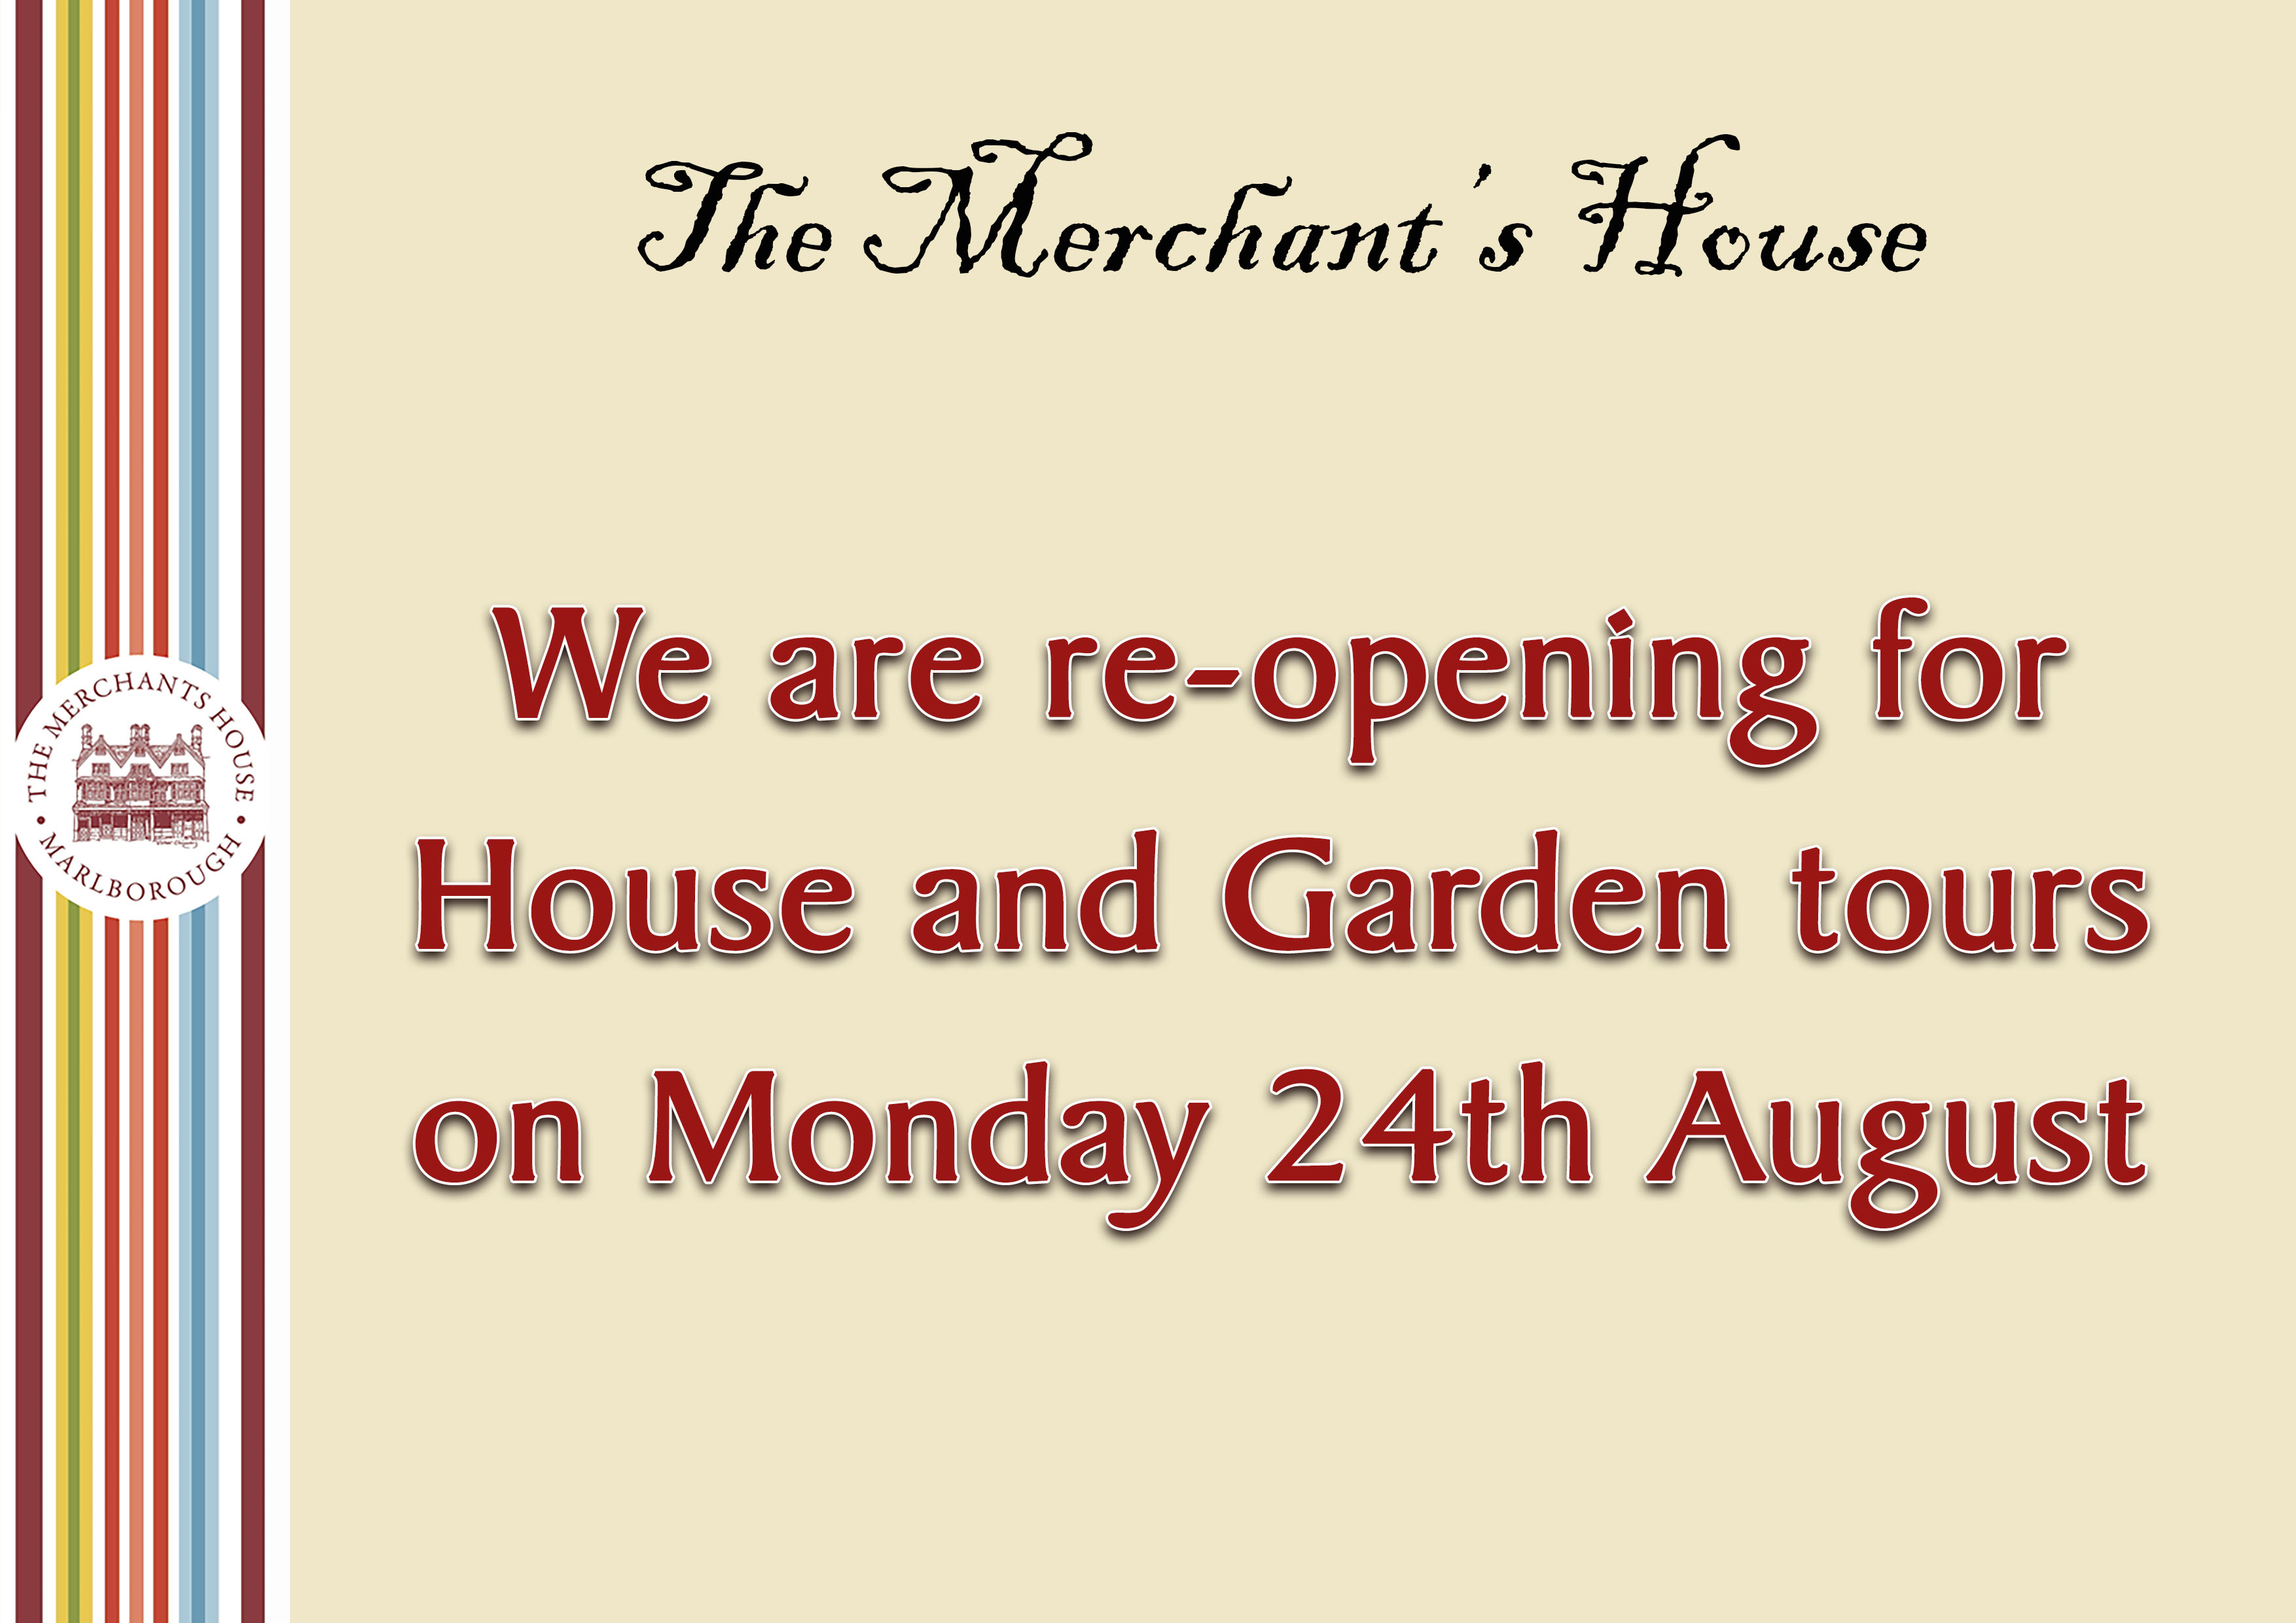 Re-opening for House and Garden Tours